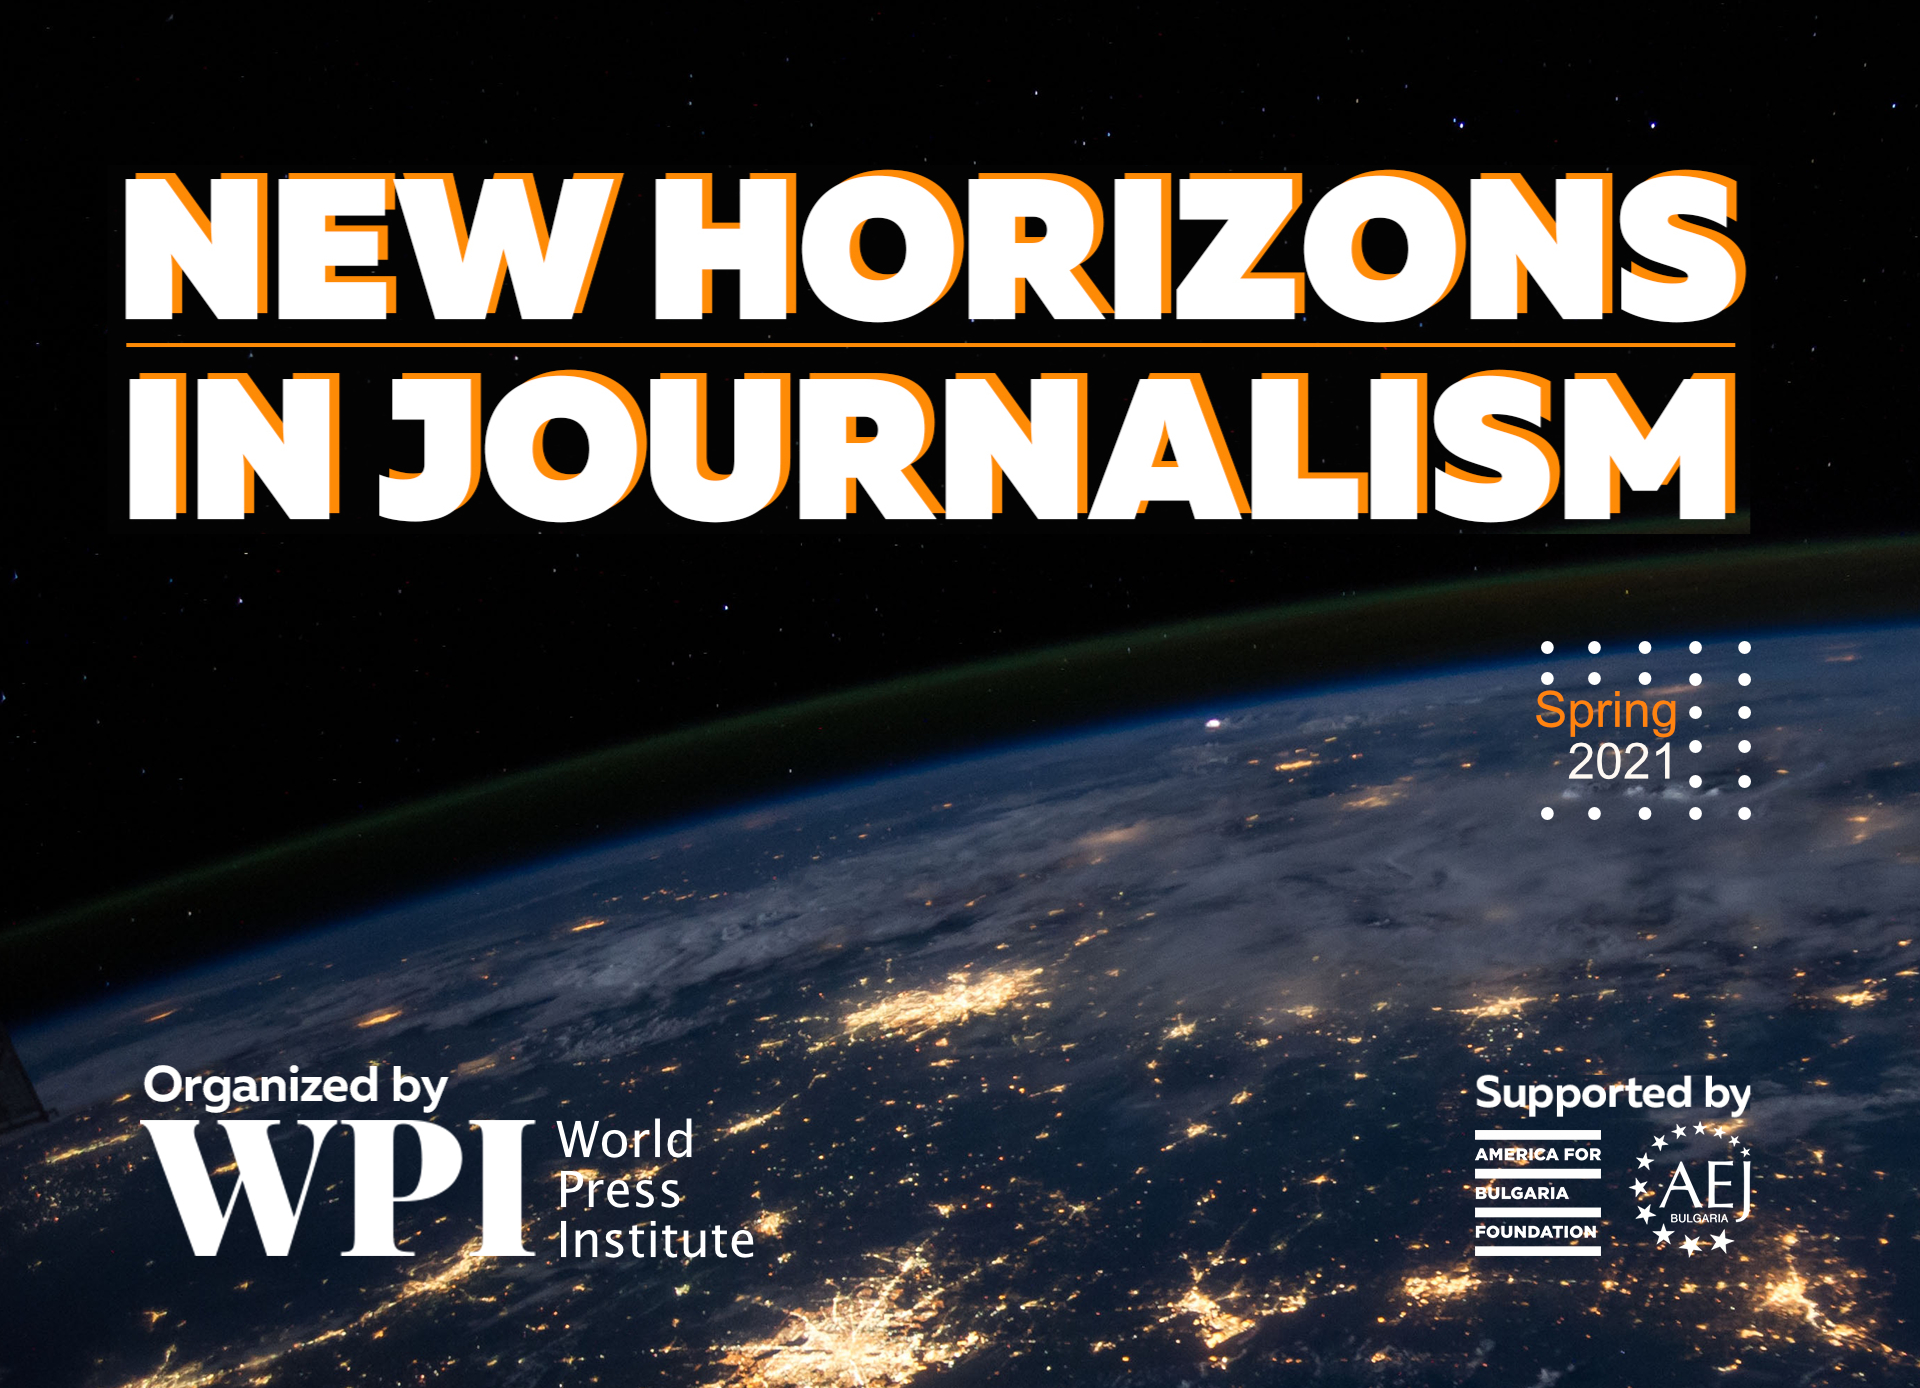 New Horizons Conference